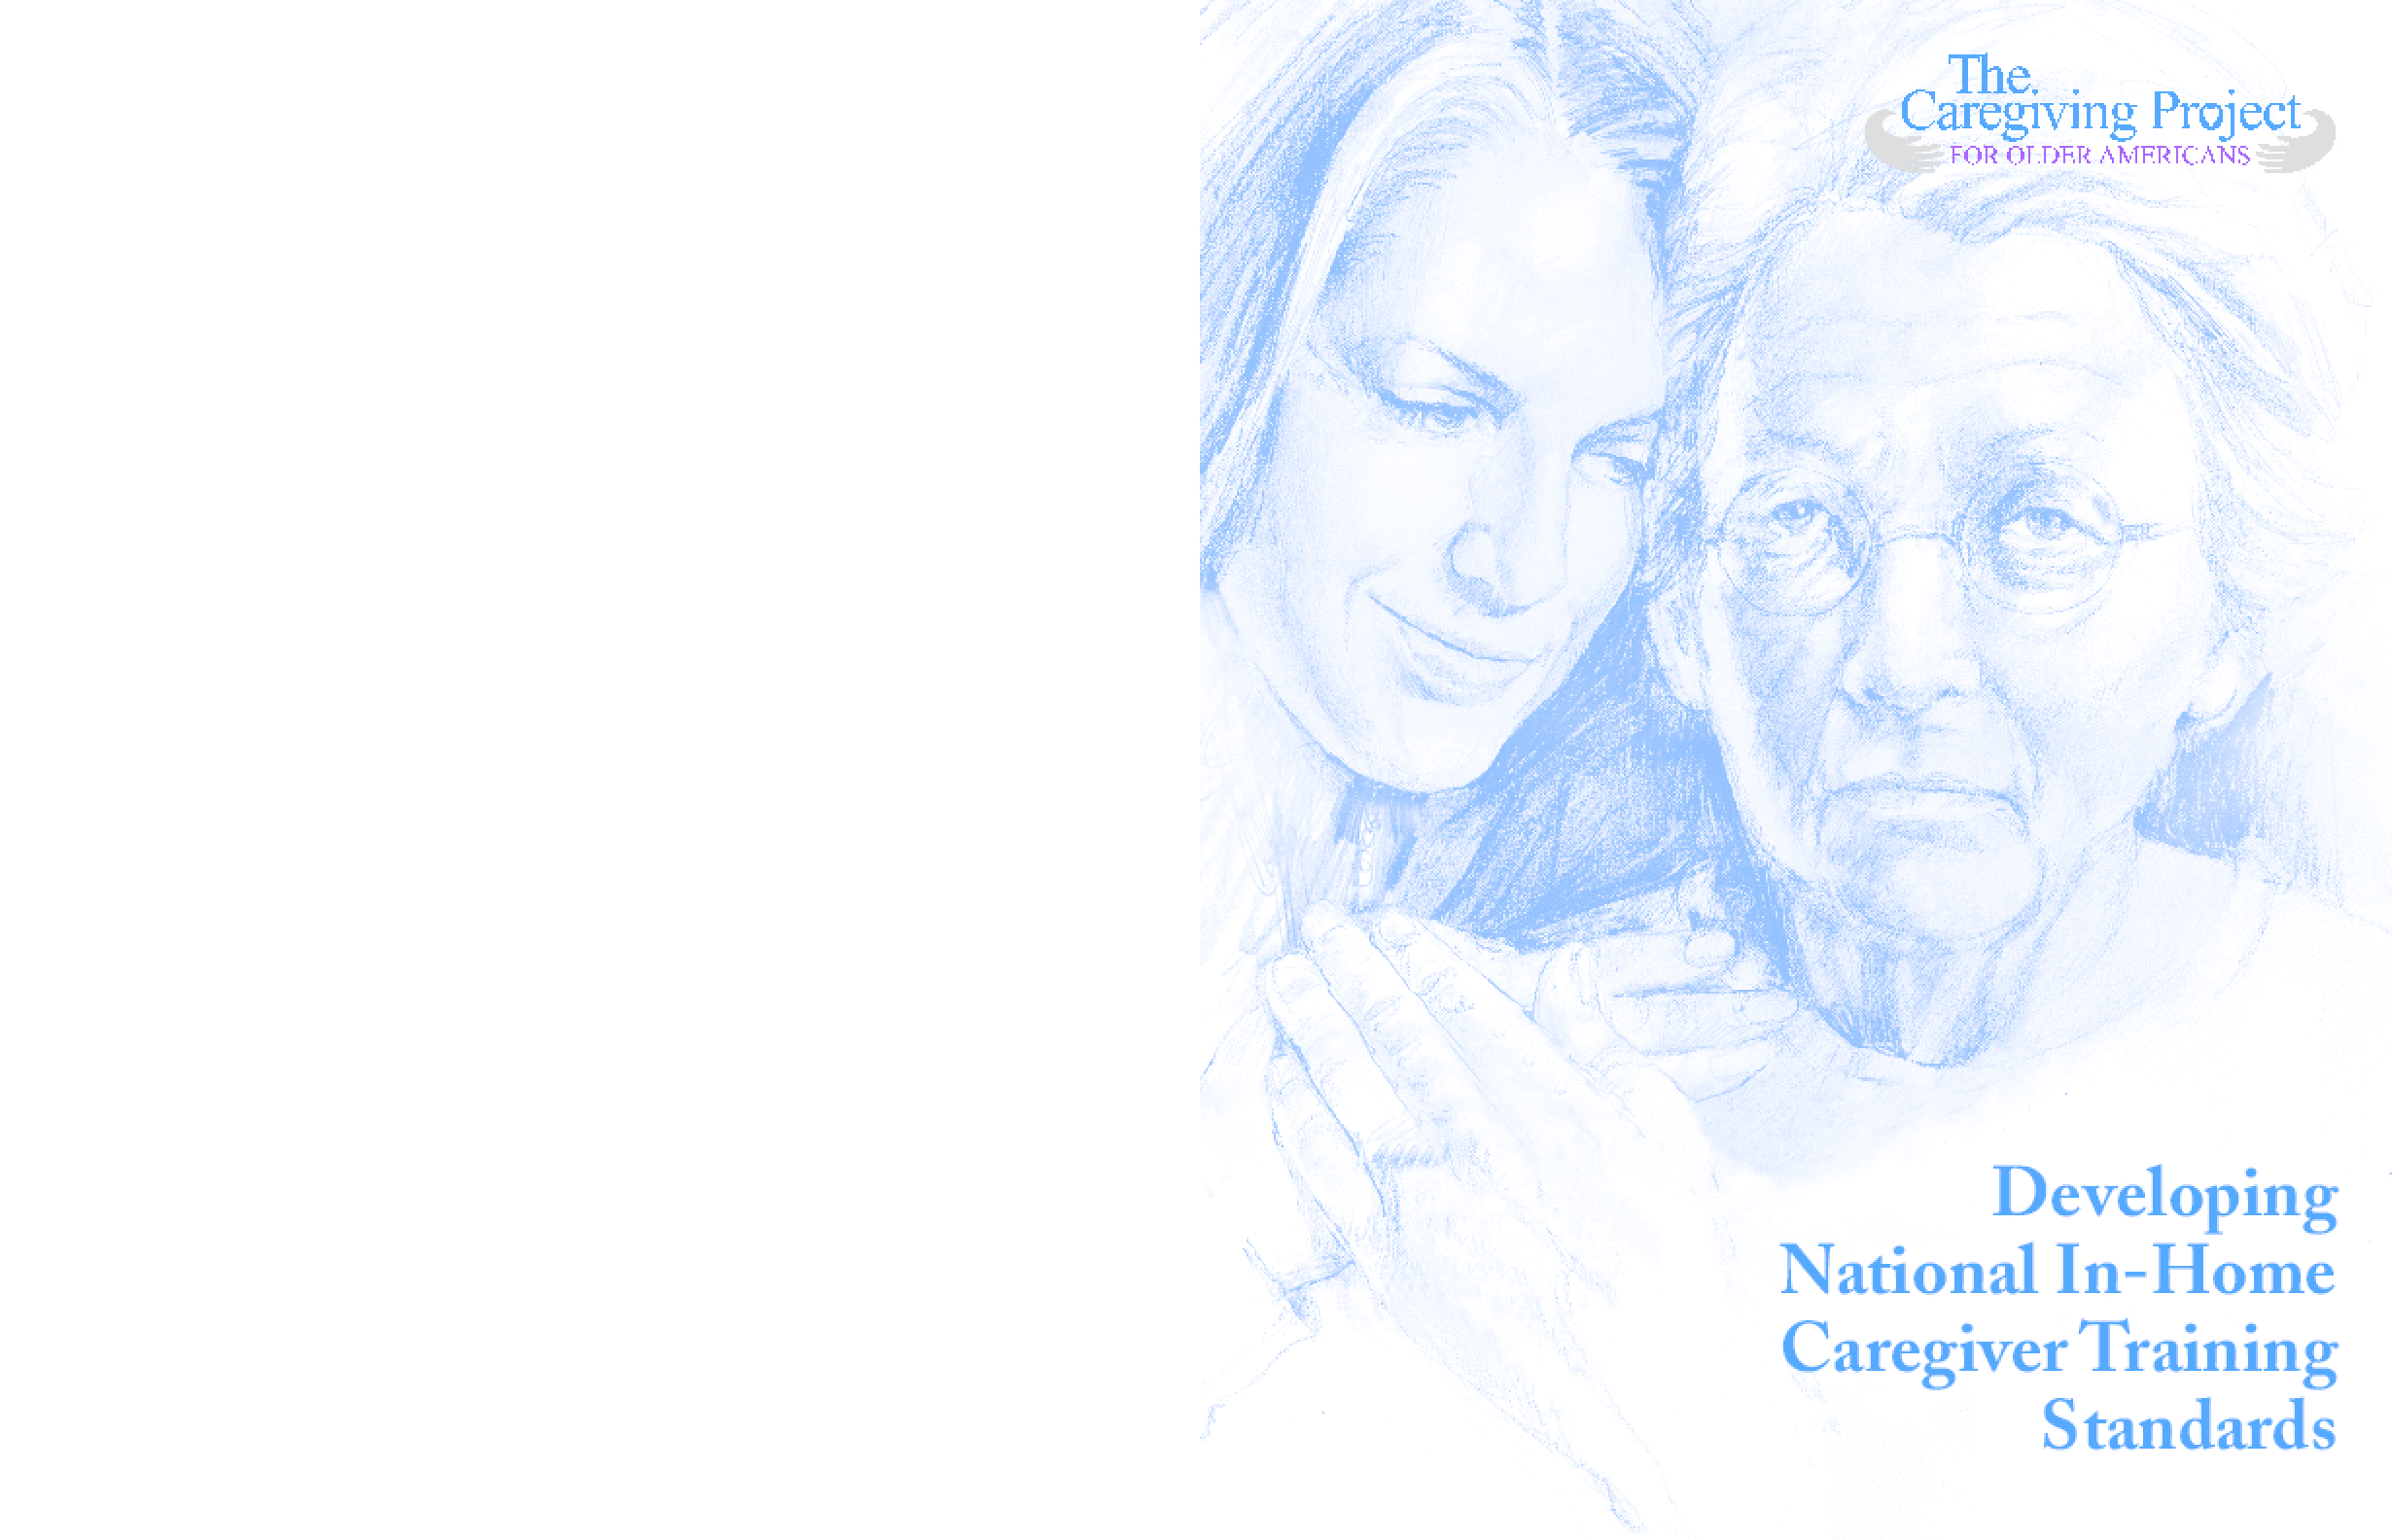 Developing National In-Home Caregiver Training Standards